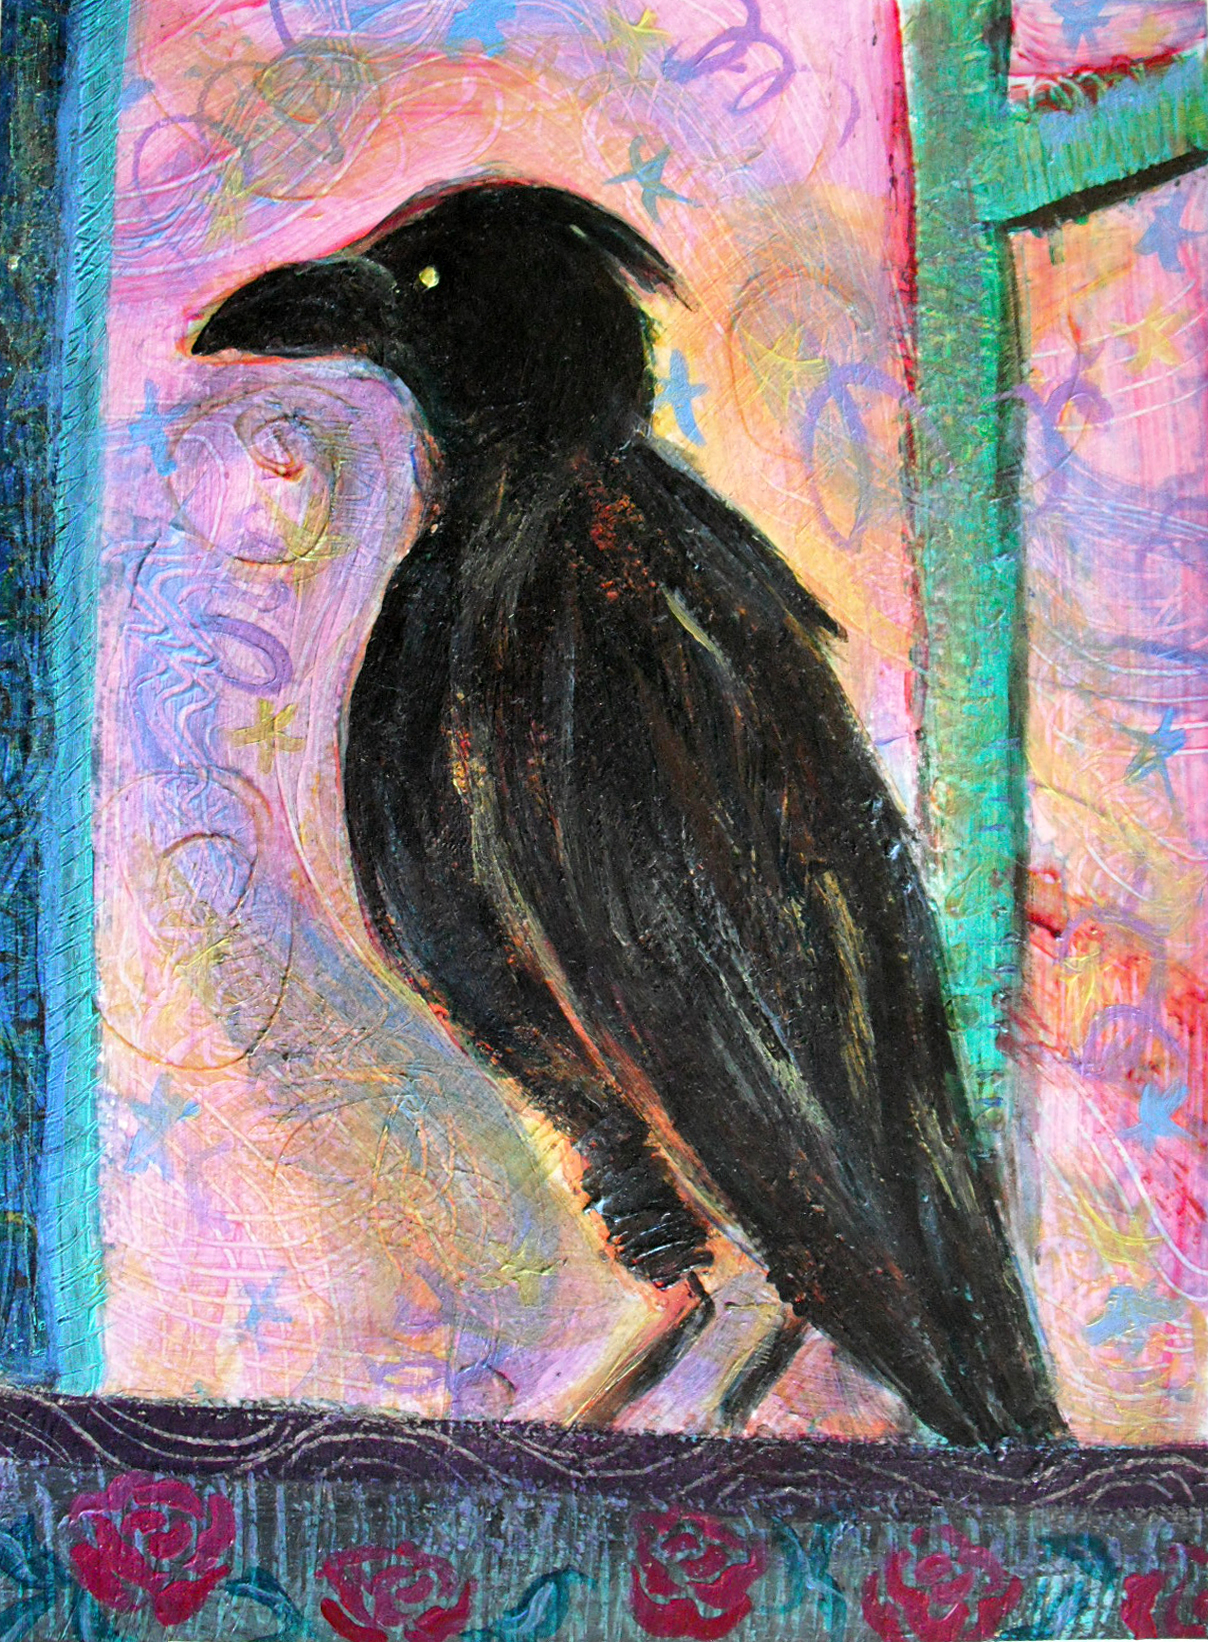 Crow in the Know - Acrylic Painting by Heni Sandoval